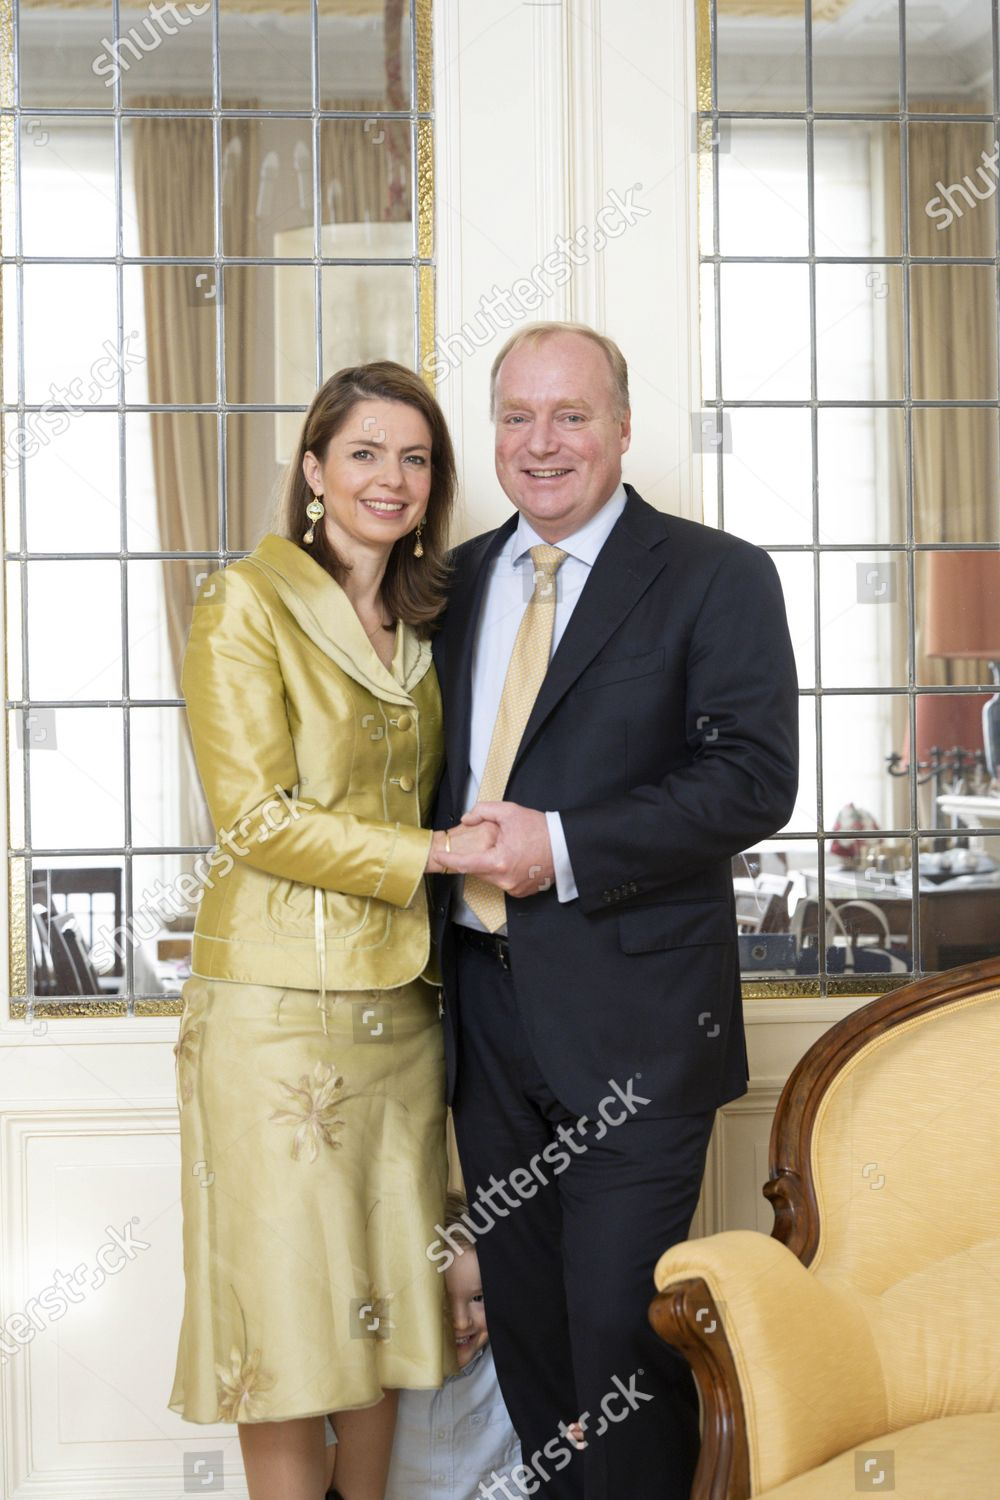 Stock photo of Prince Carlos de Bourbon family Christmas card photo session, The Hague, The Netherlands - 03 Nov 2019